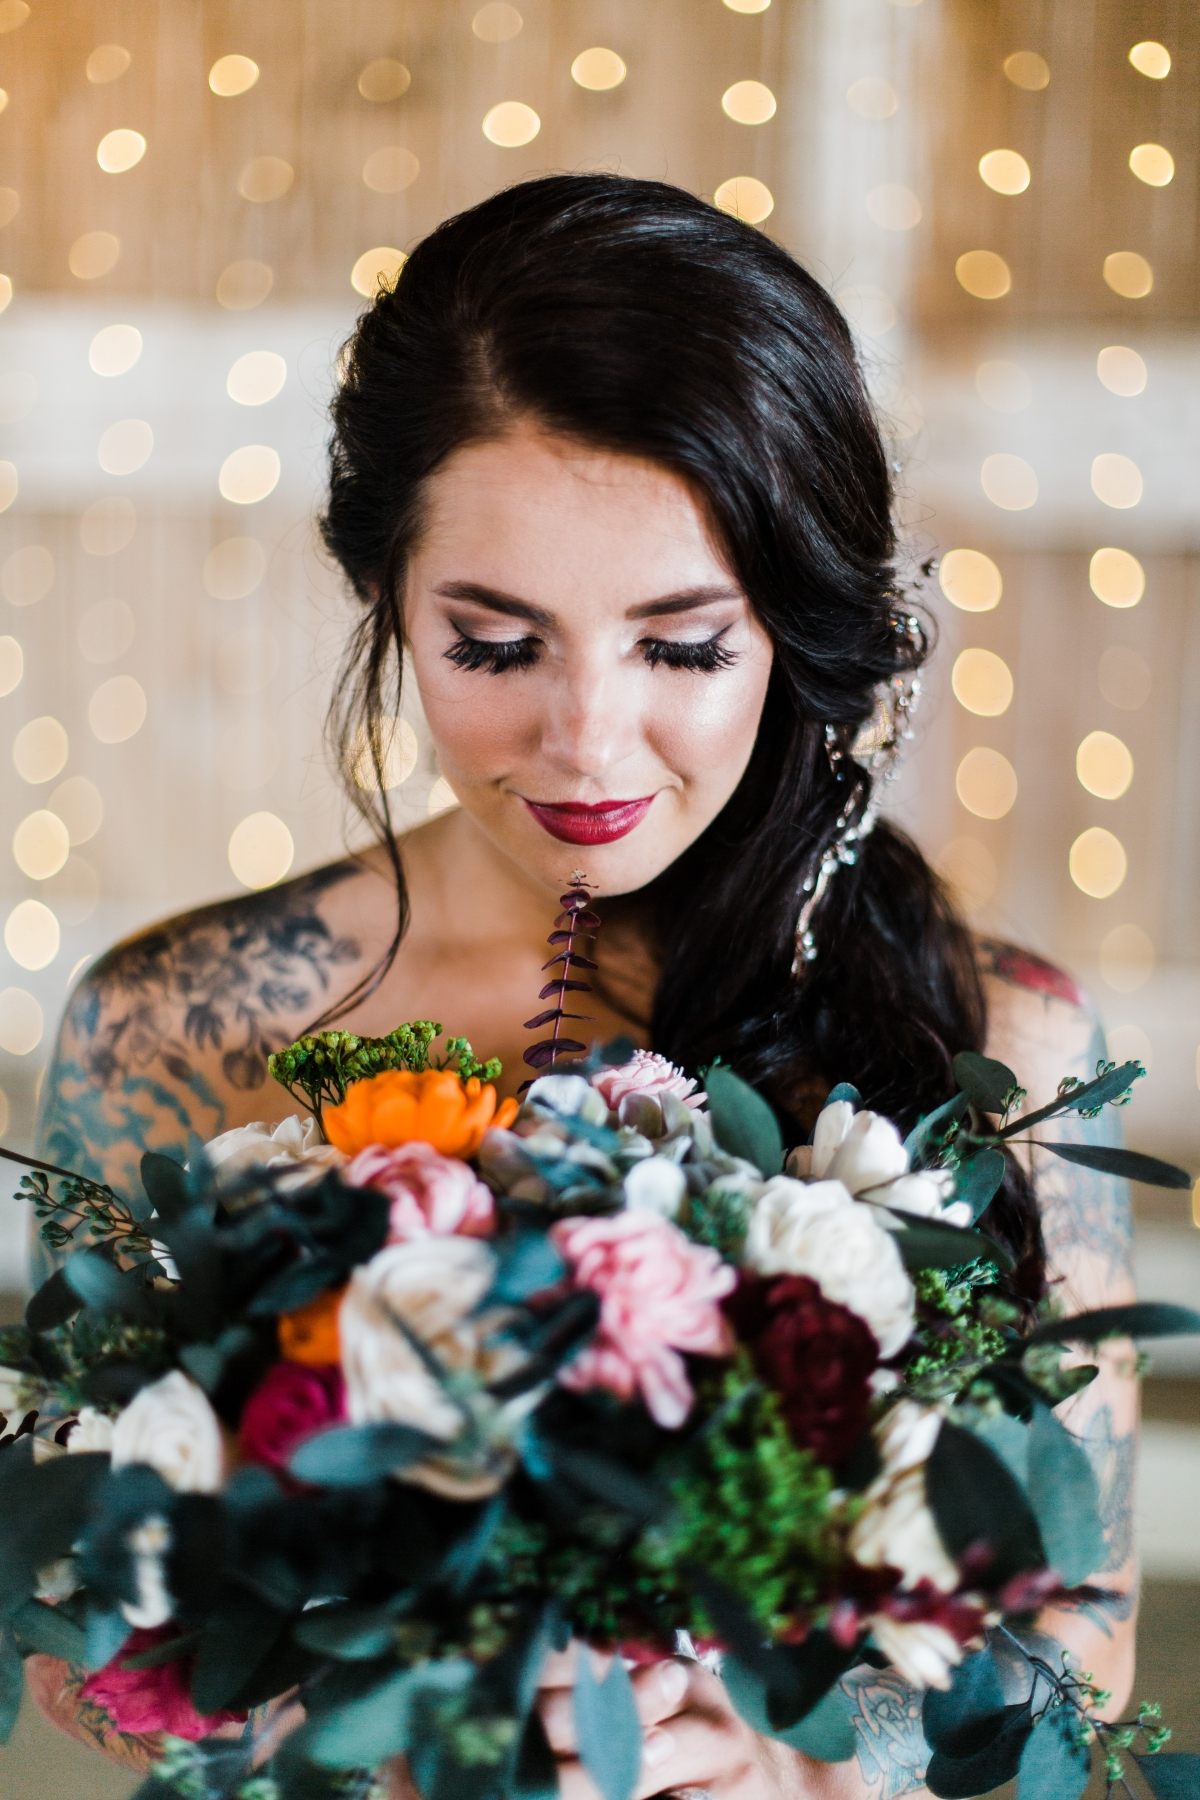 Bride with Tattoos and Colorful Bouquet